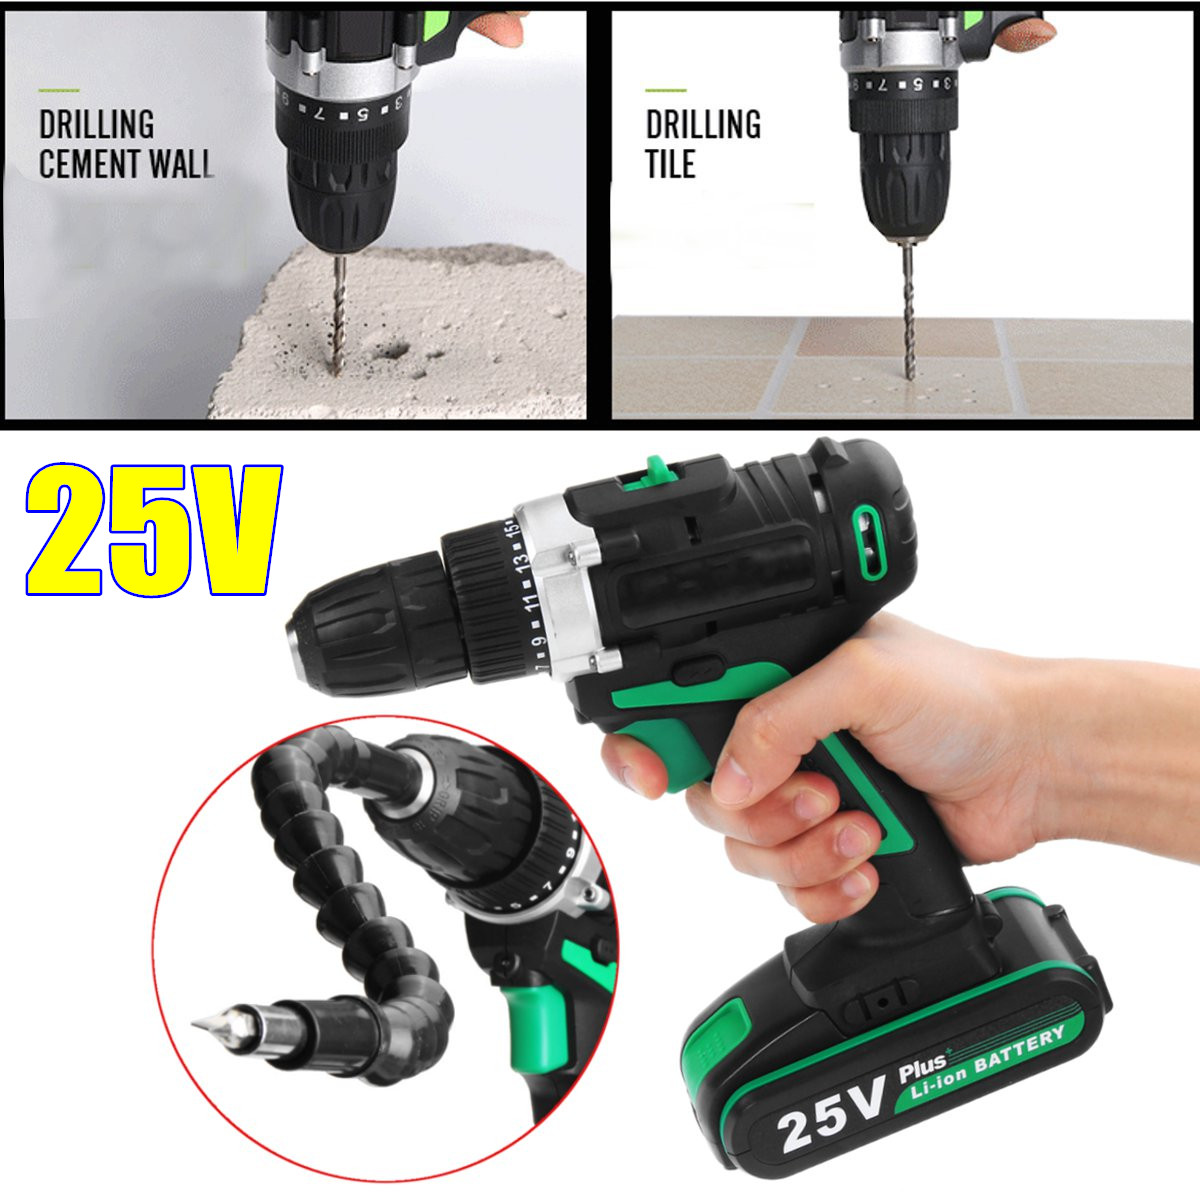 25V Multi-function Electric Screwdrivers Rechargeable Cordless Power Drilling Tools Power Screwdrive